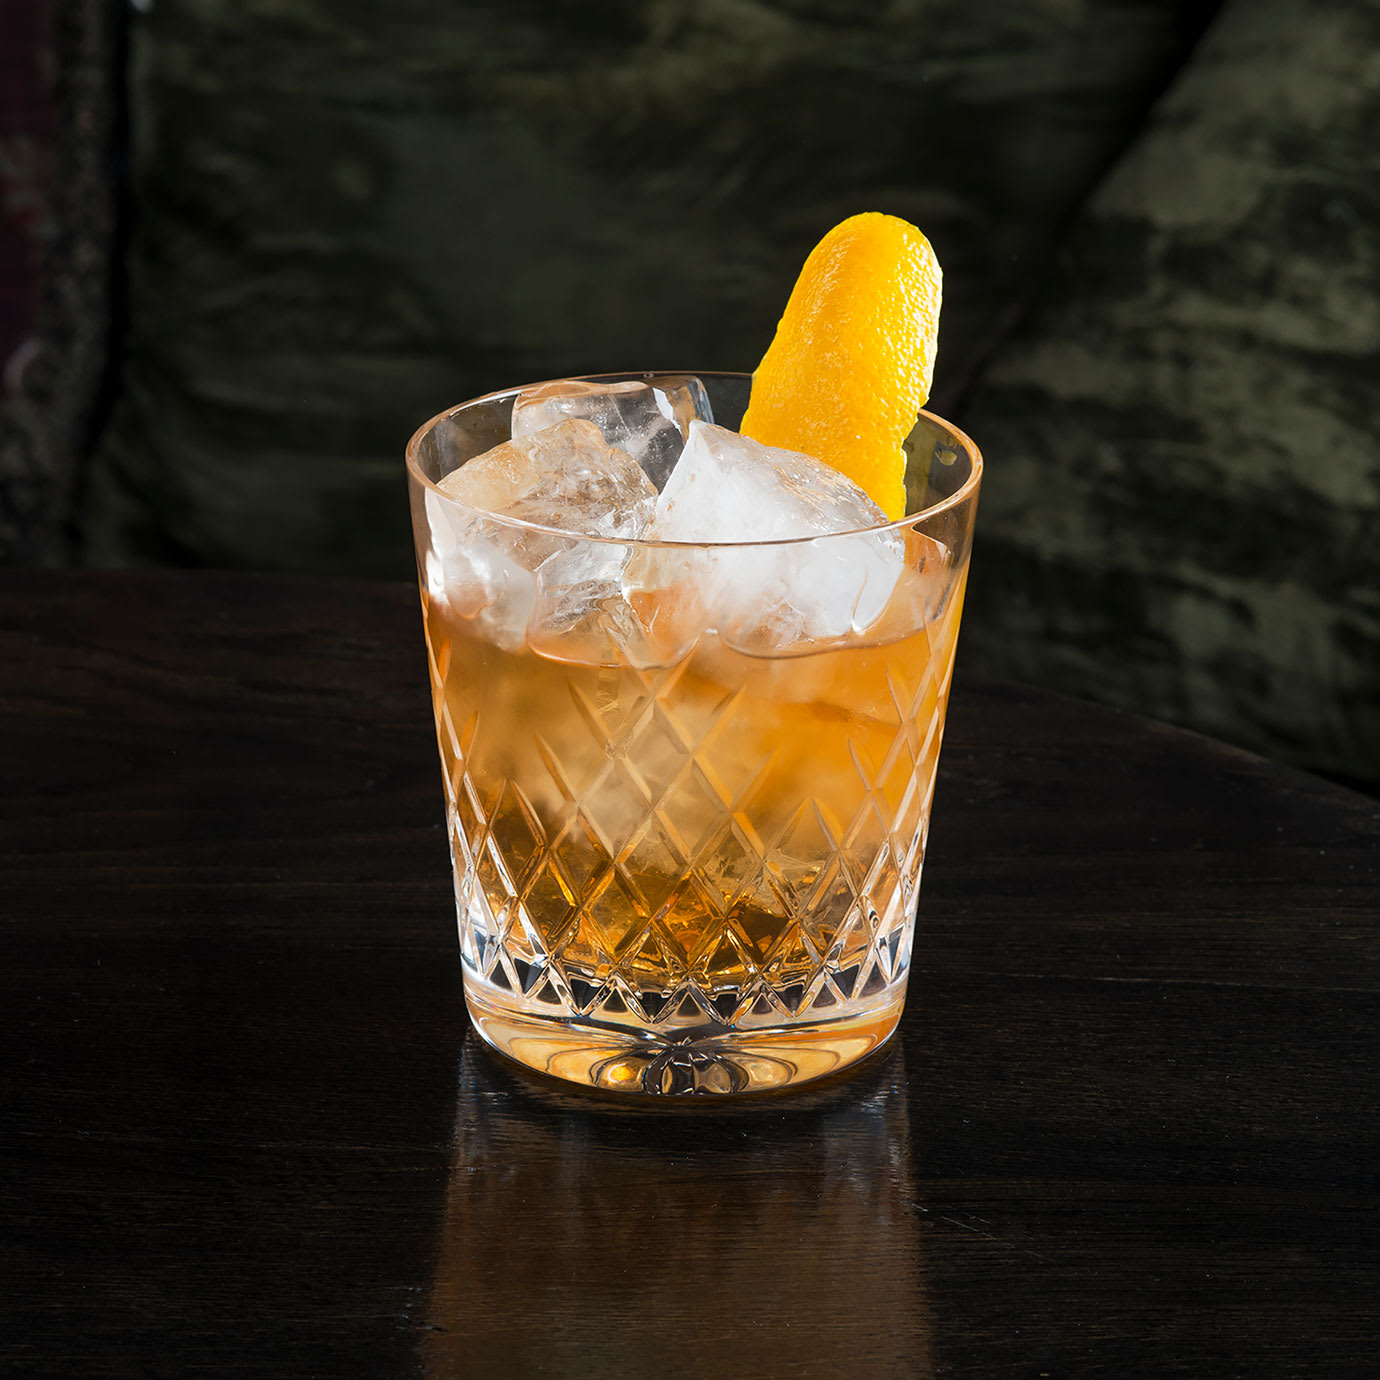 A cocktail with a slice of orange peel in it.